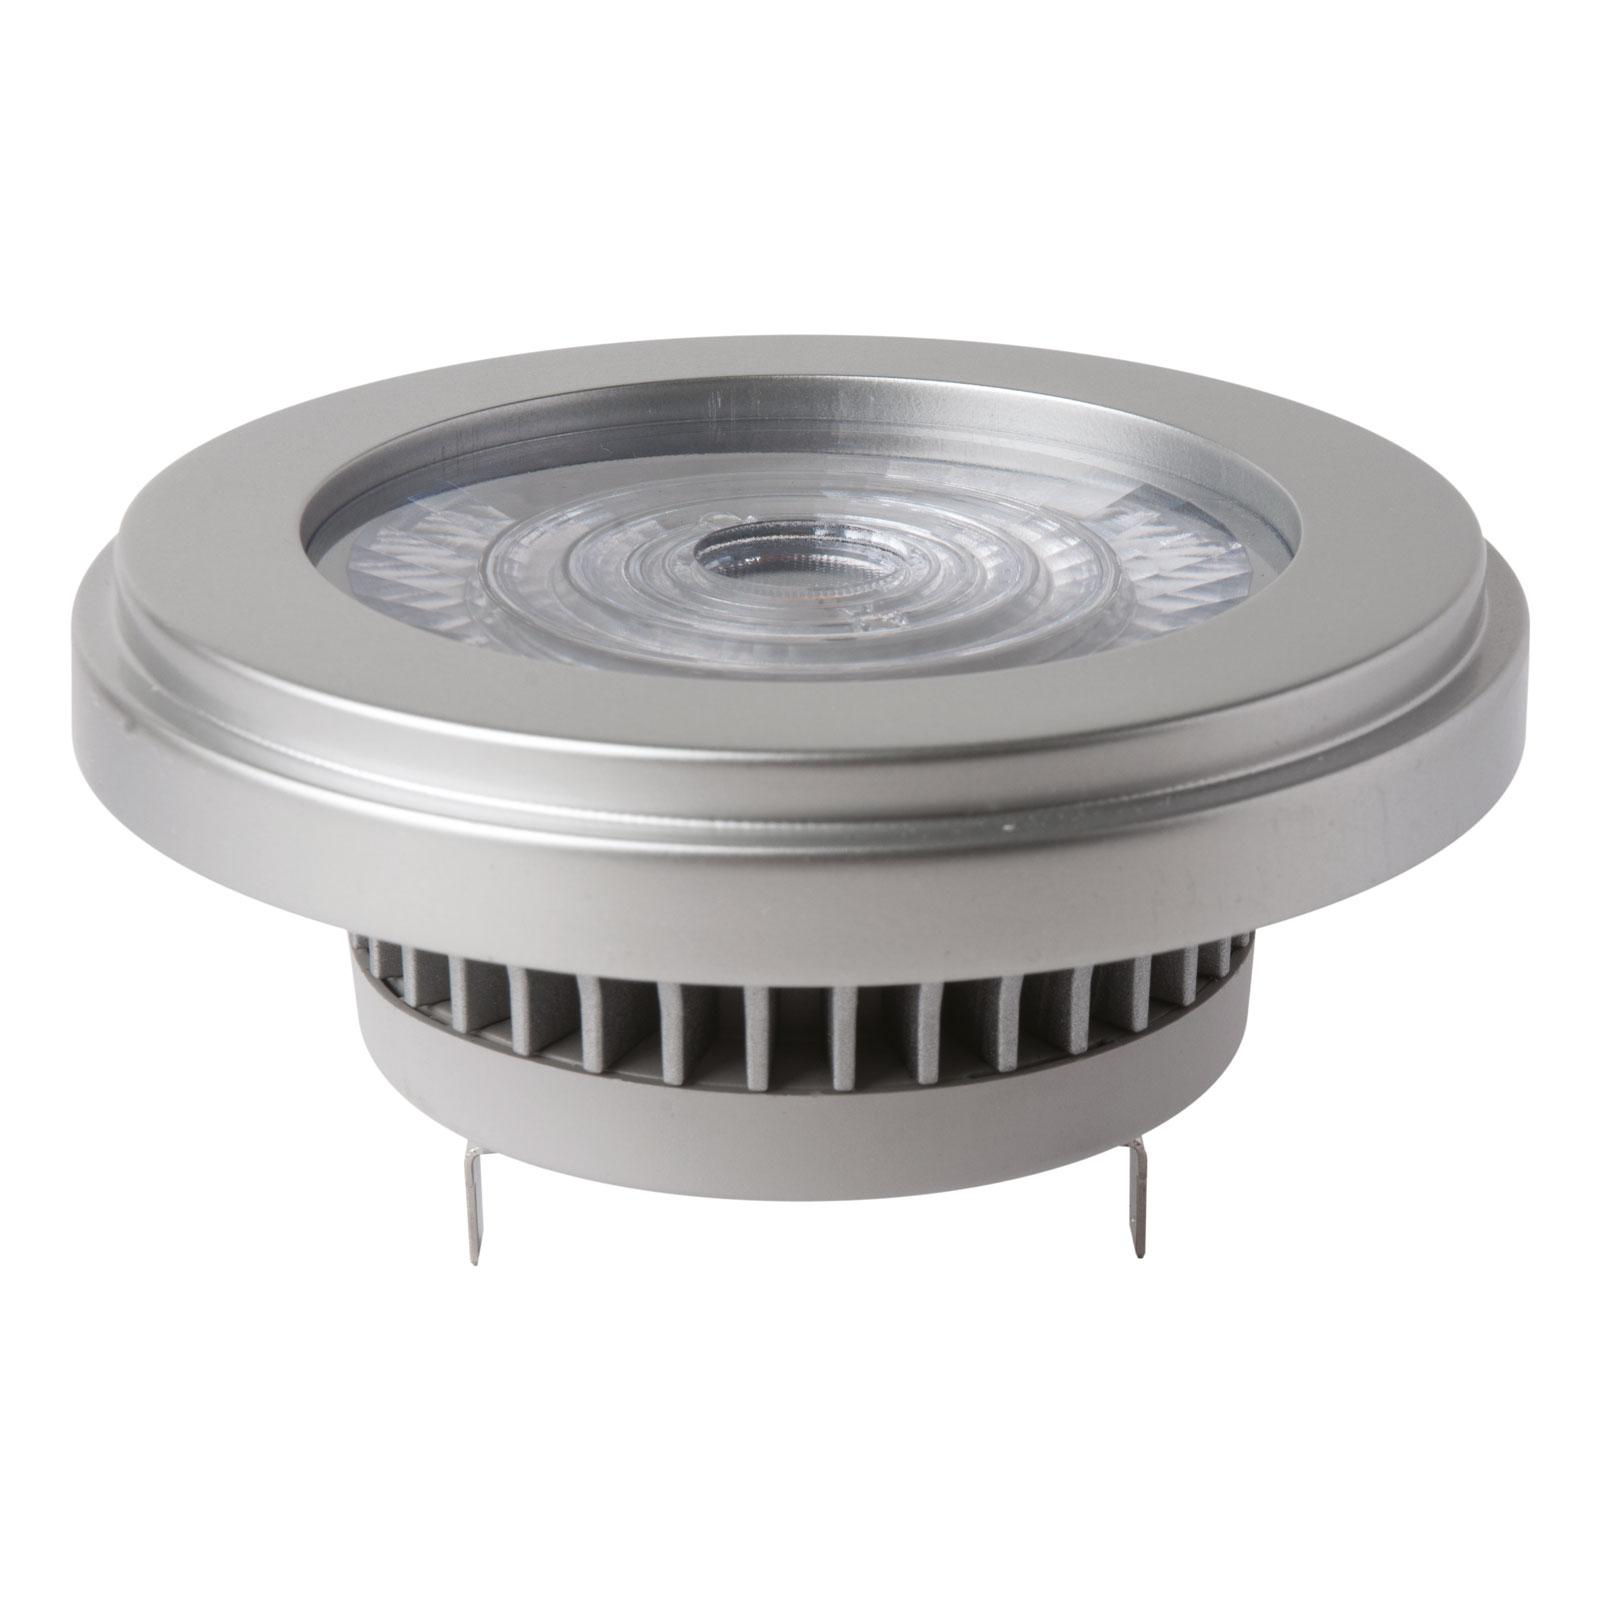 LED-Lampe G53 12W Dual Beam, dim to warm